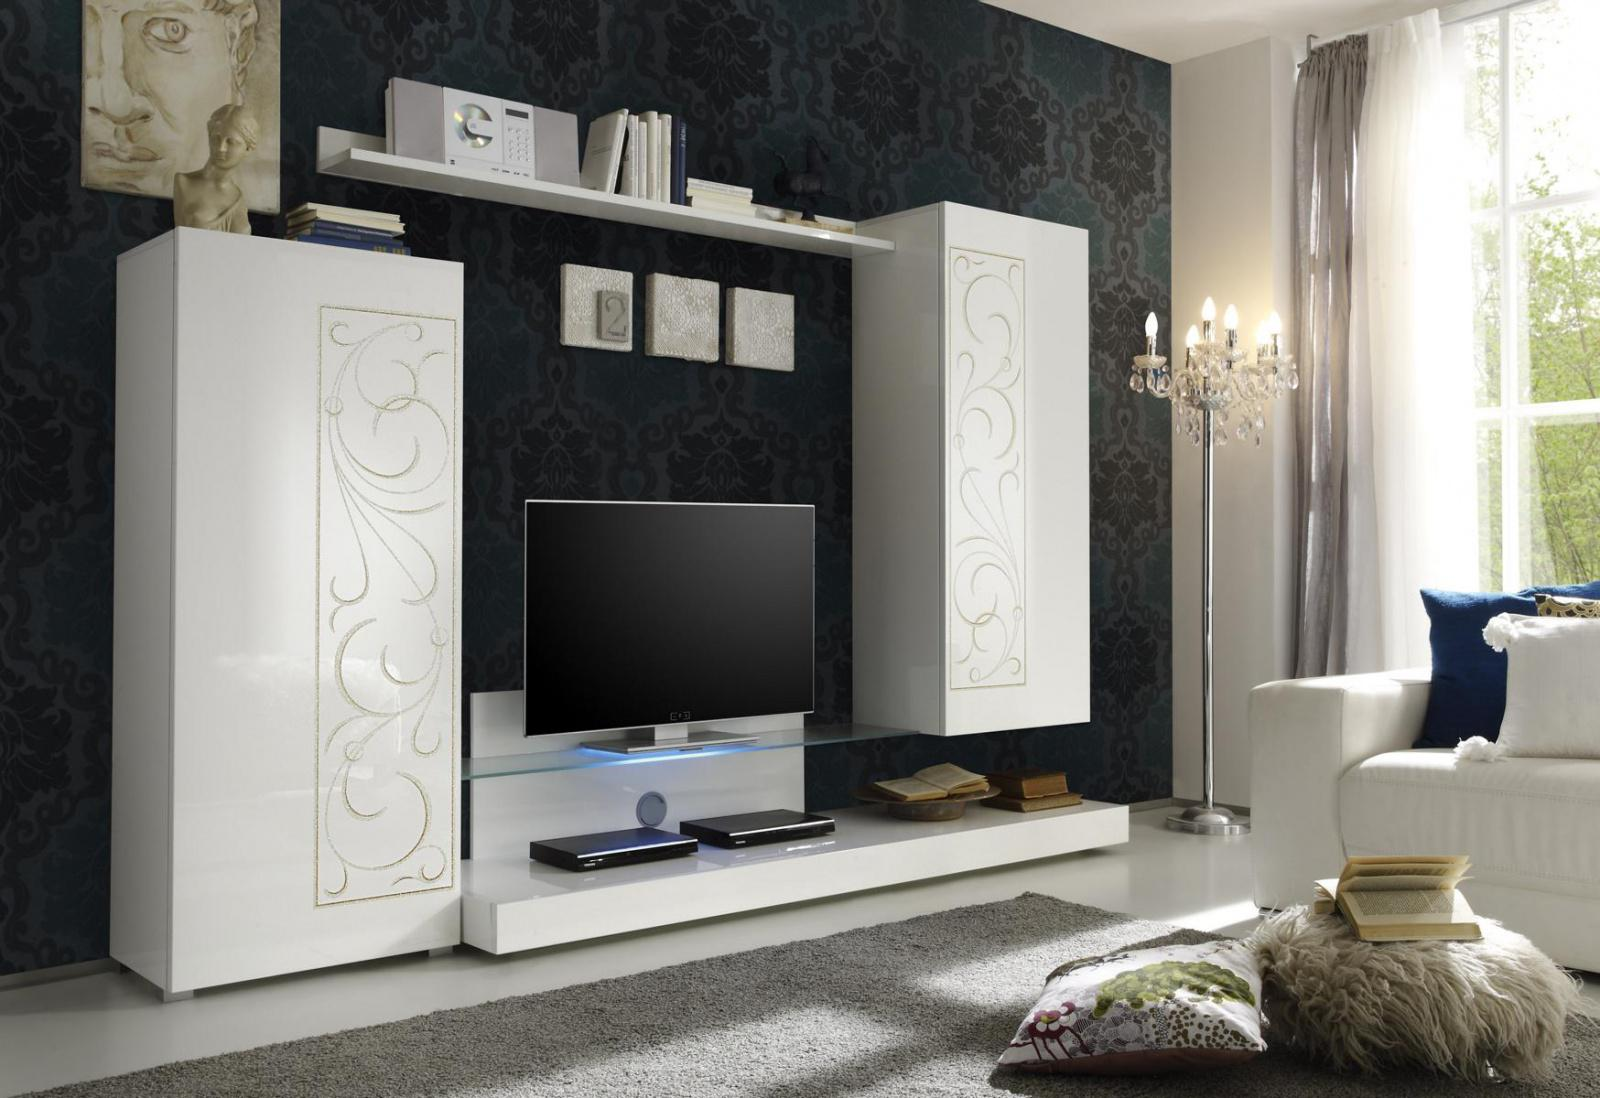 wohnwand karolin 4 teilig in wei lack kaufen bei m bel lux. Black Bedroom Furniture Sets. Home Design Ideas